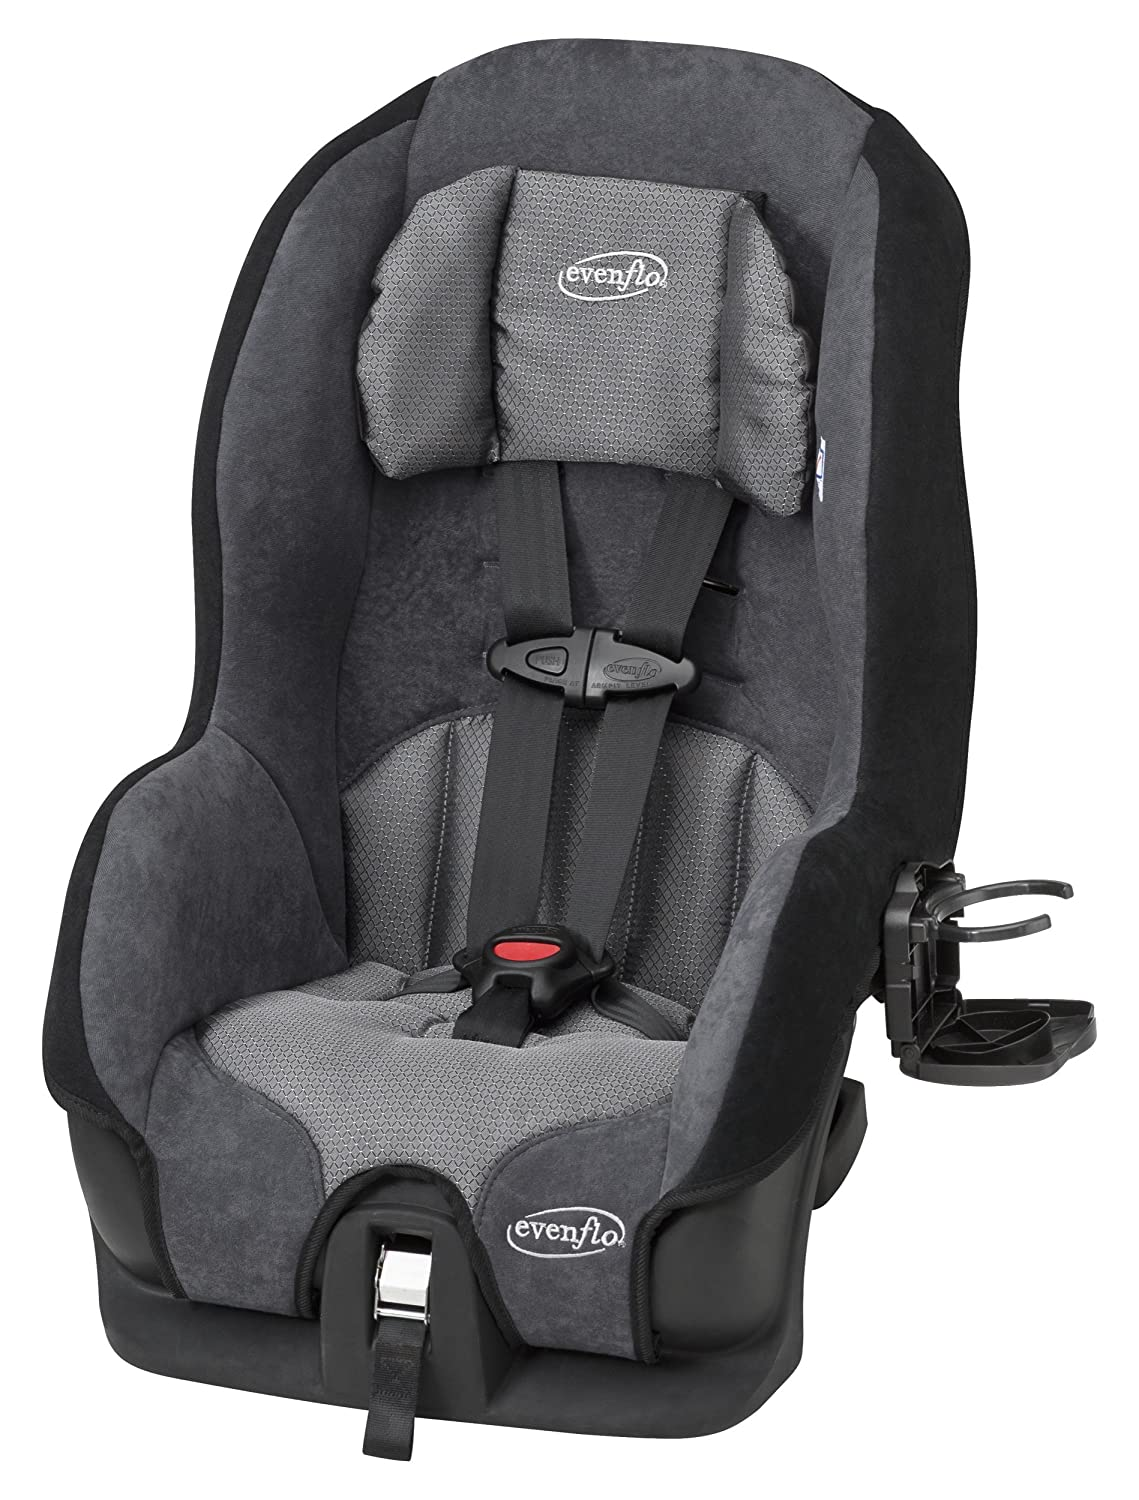 Evenflo Tribute LX Convertible Car Seat}